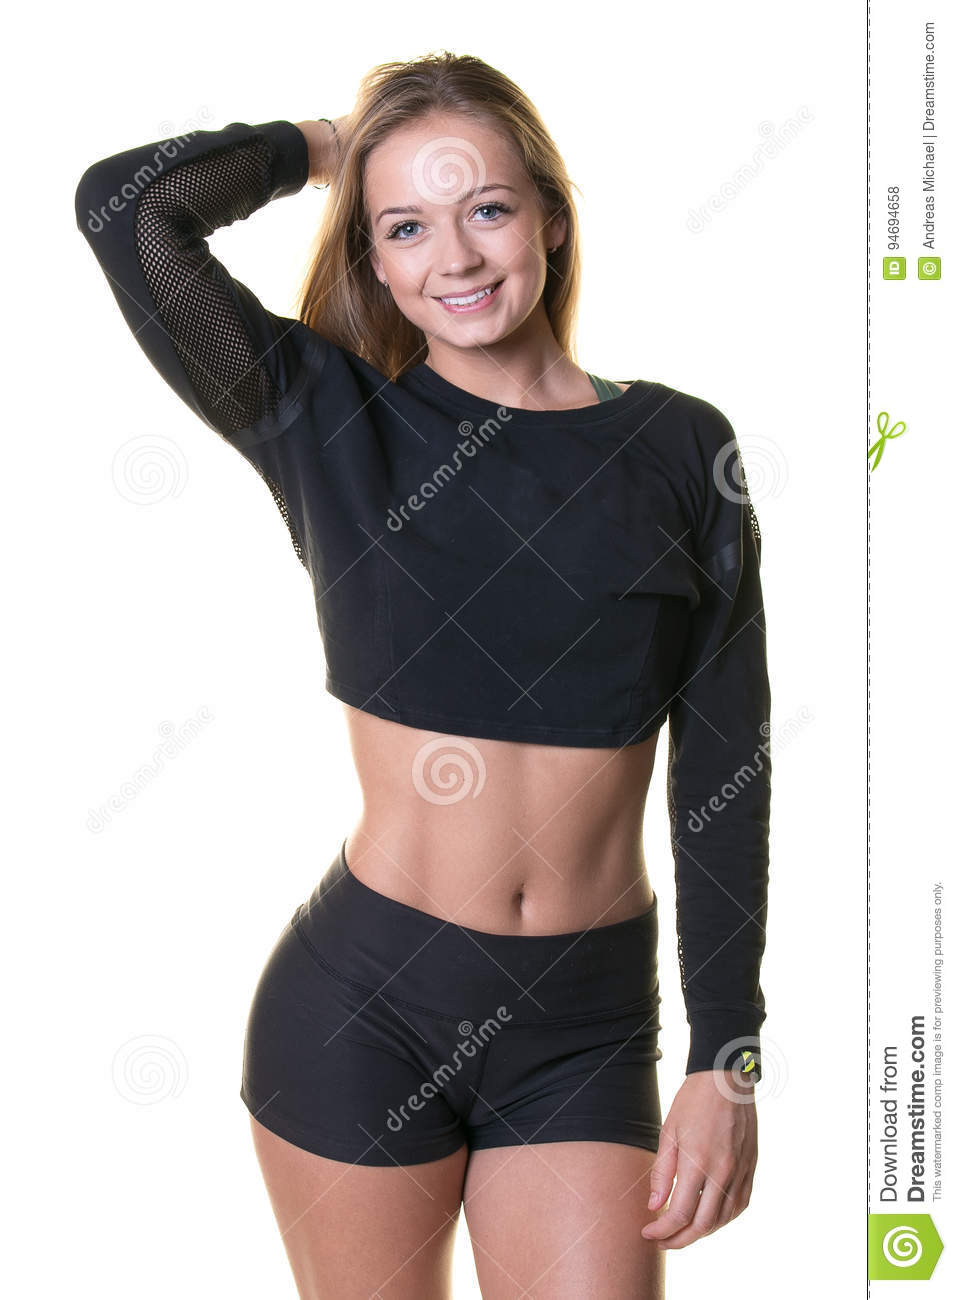 9a2538f703f17 A beautiful young blonde woman in a black crop top and black shorts isolated  on a white background.